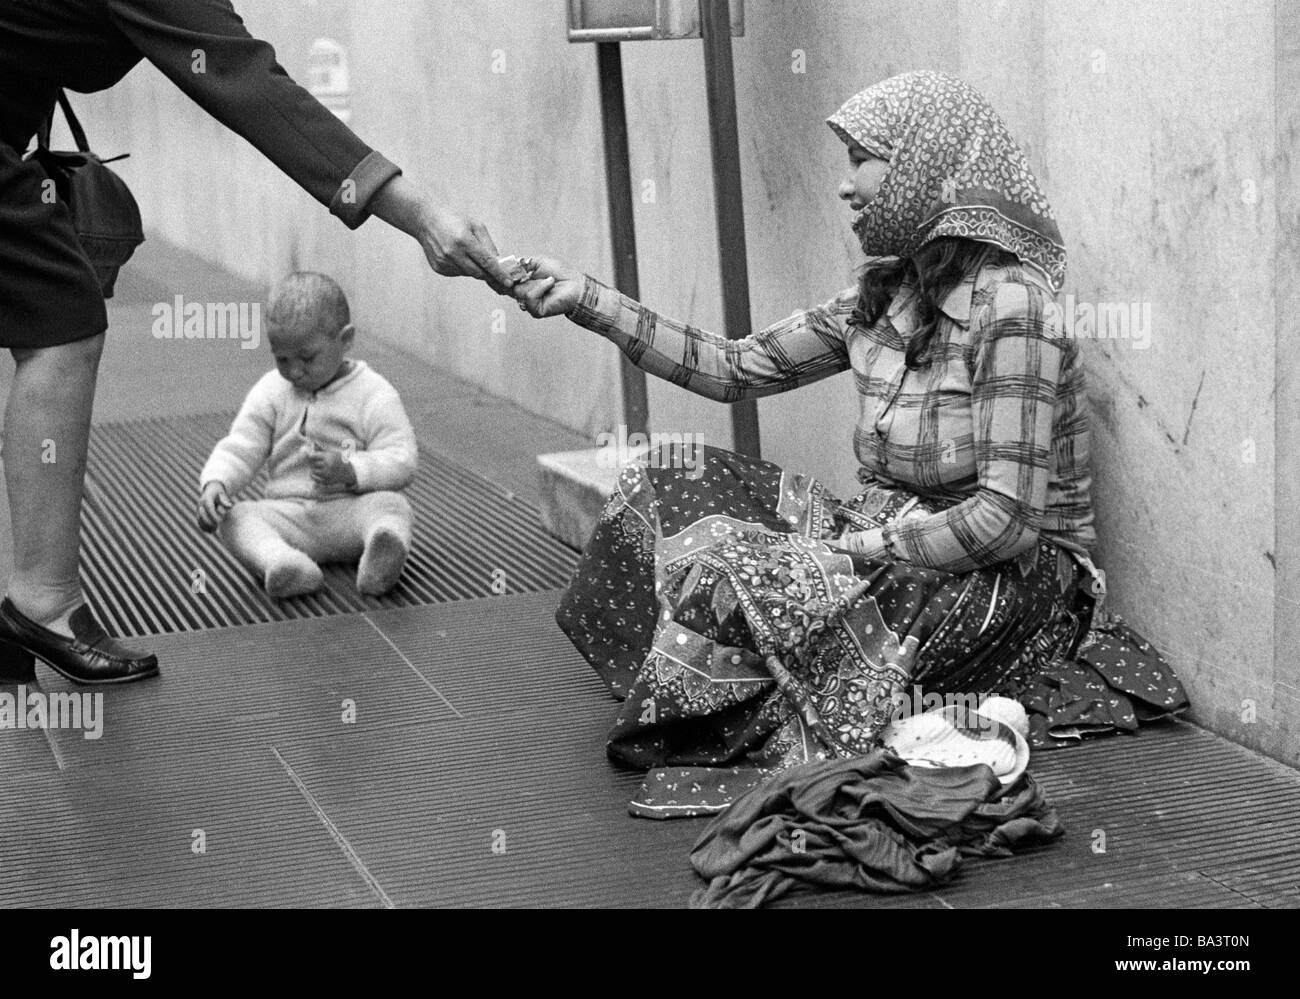 Seventies, black and white photo, people, poorness, beggar-woman sits at the roadside, her baby plays on a grating, - Stock Image